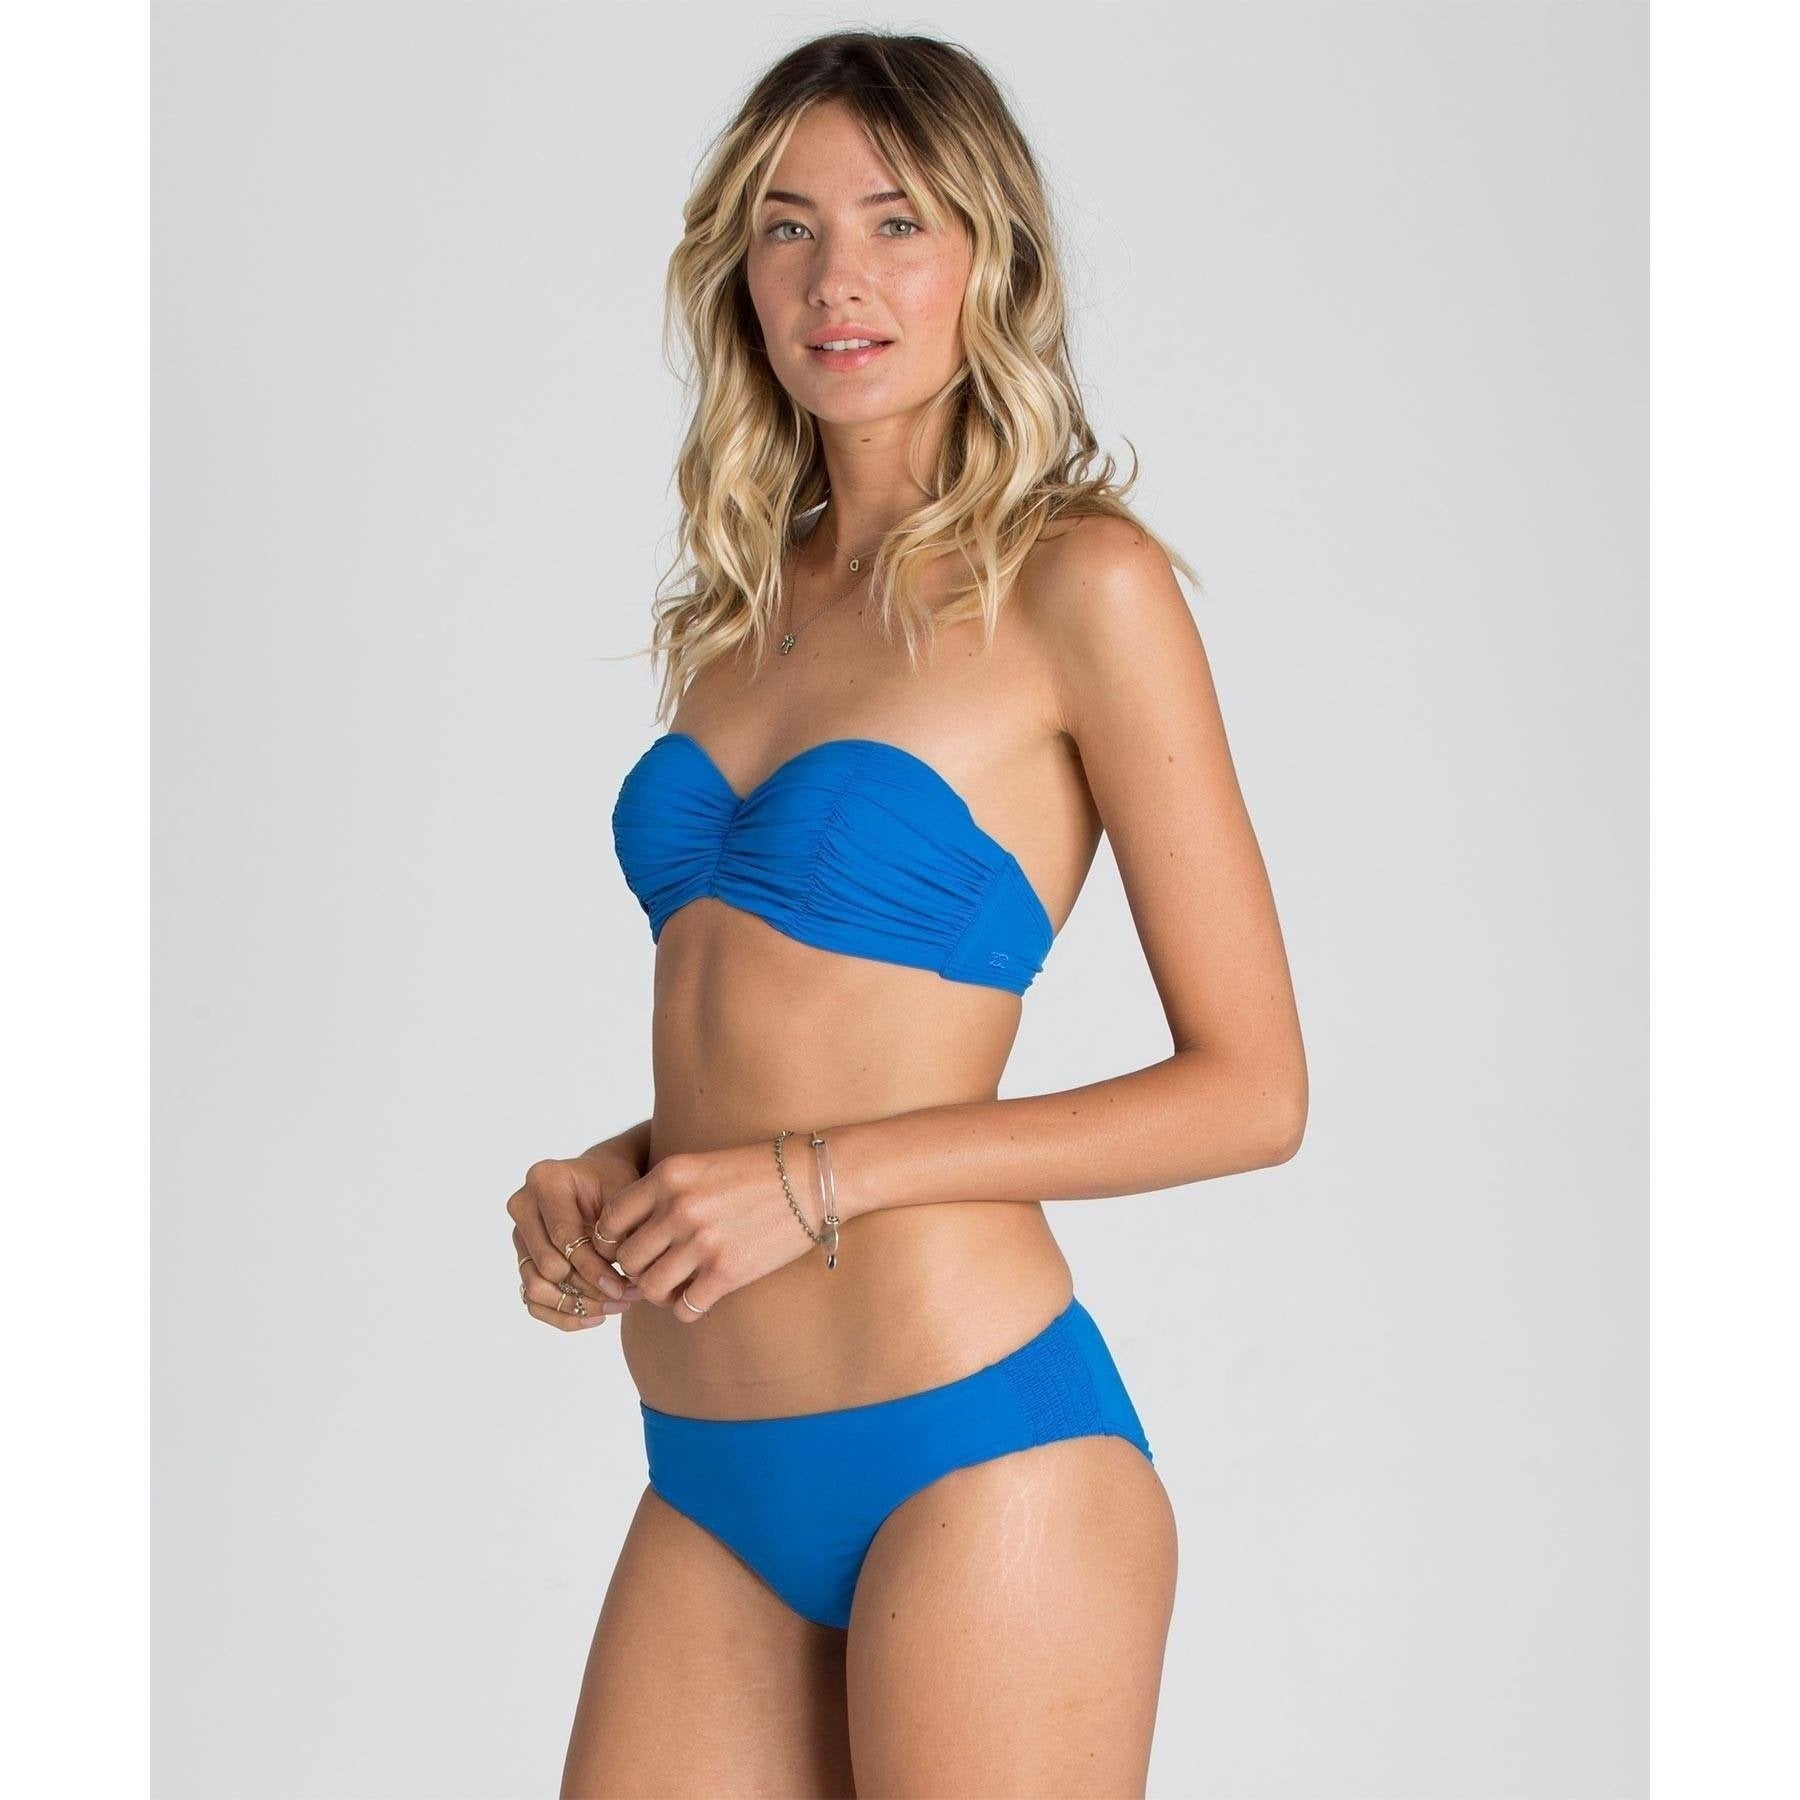 Swim Suit - Billabong Sol Searcher Bustier Bikini Top